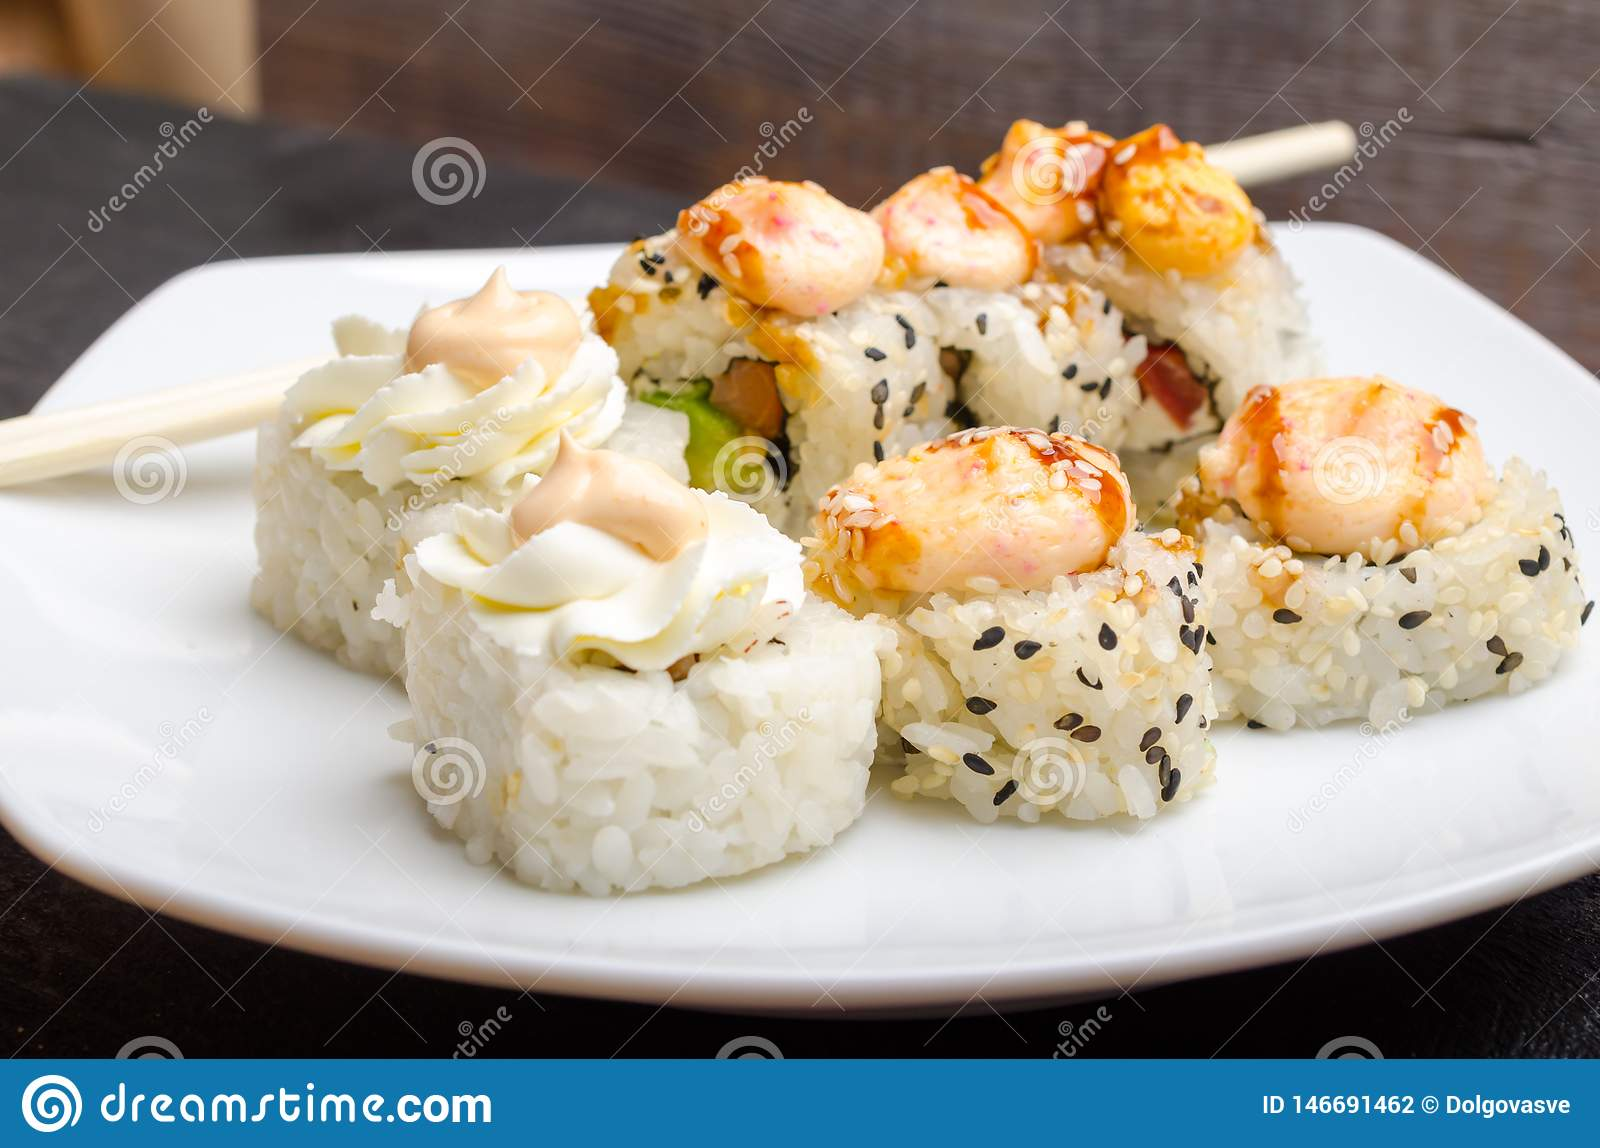 A set of cut Japanese sushi rolls on a white plate closeup